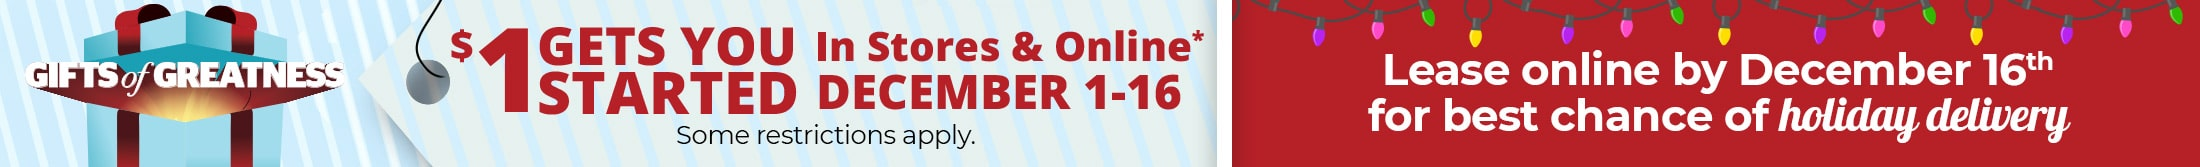 black friday promo banner